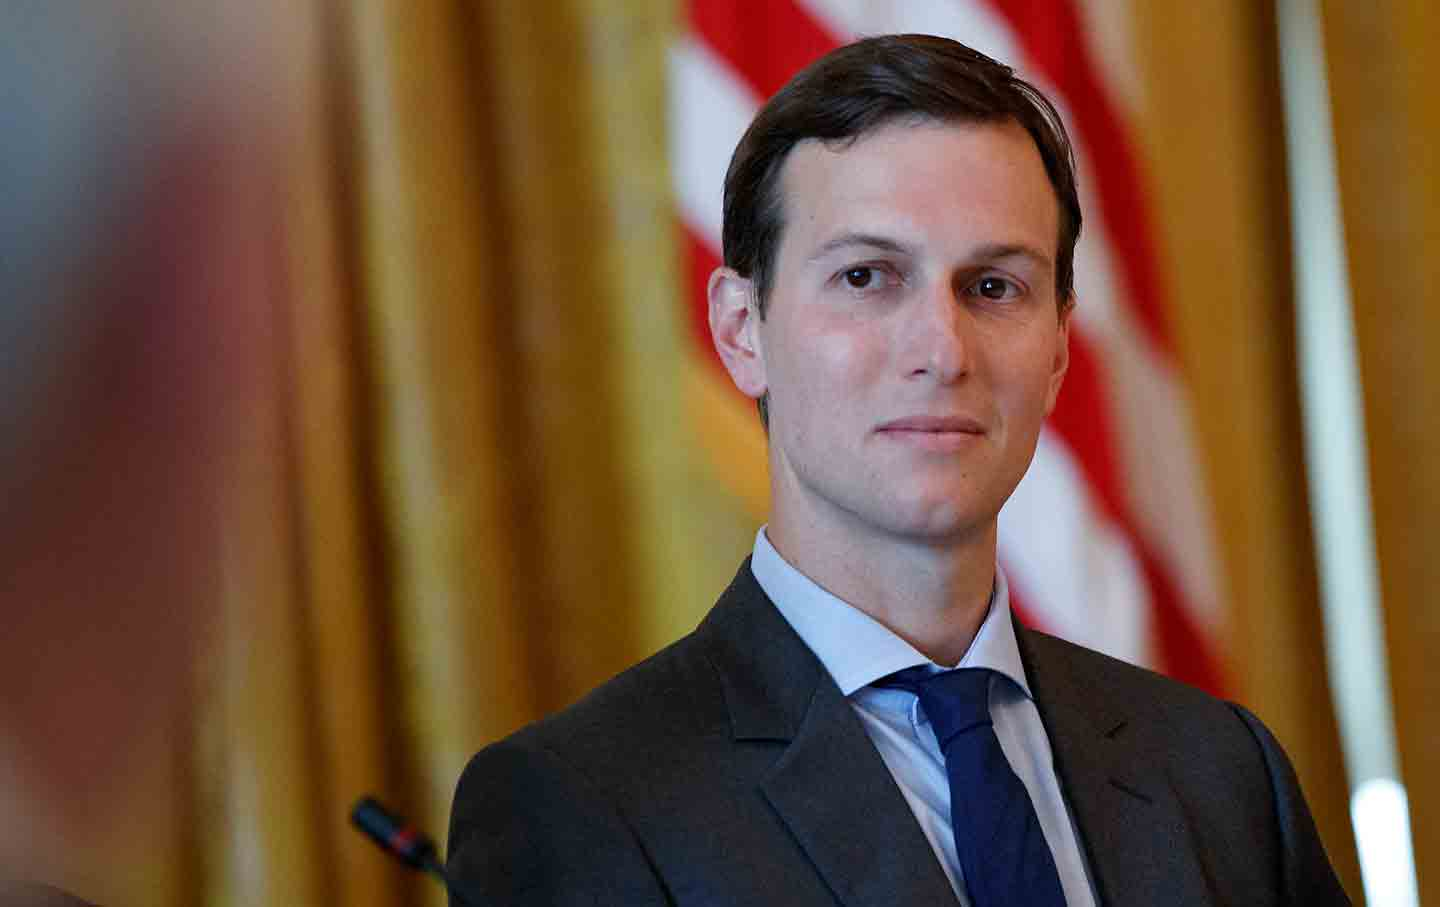 Jared Kushner White House